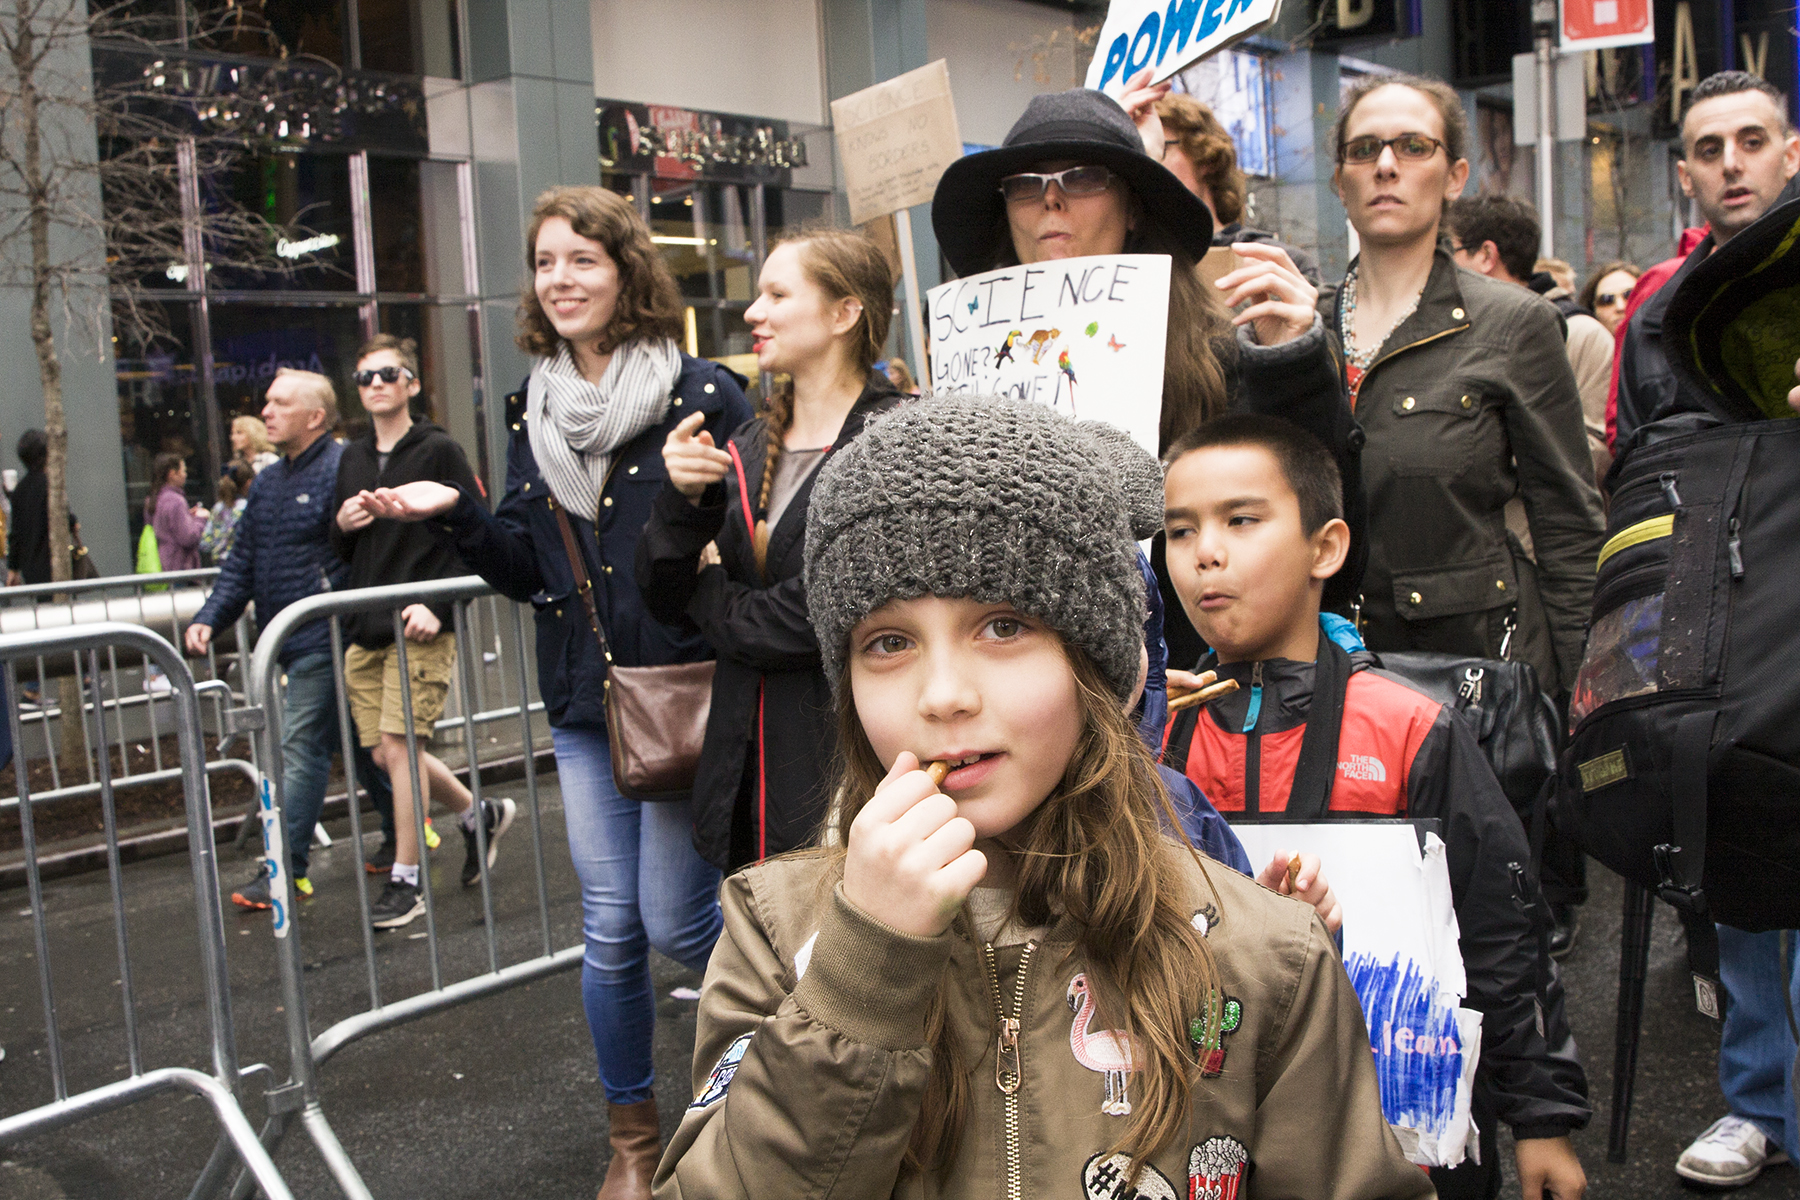 Snacktime.  The March for Science, New York City, April 22, 2017